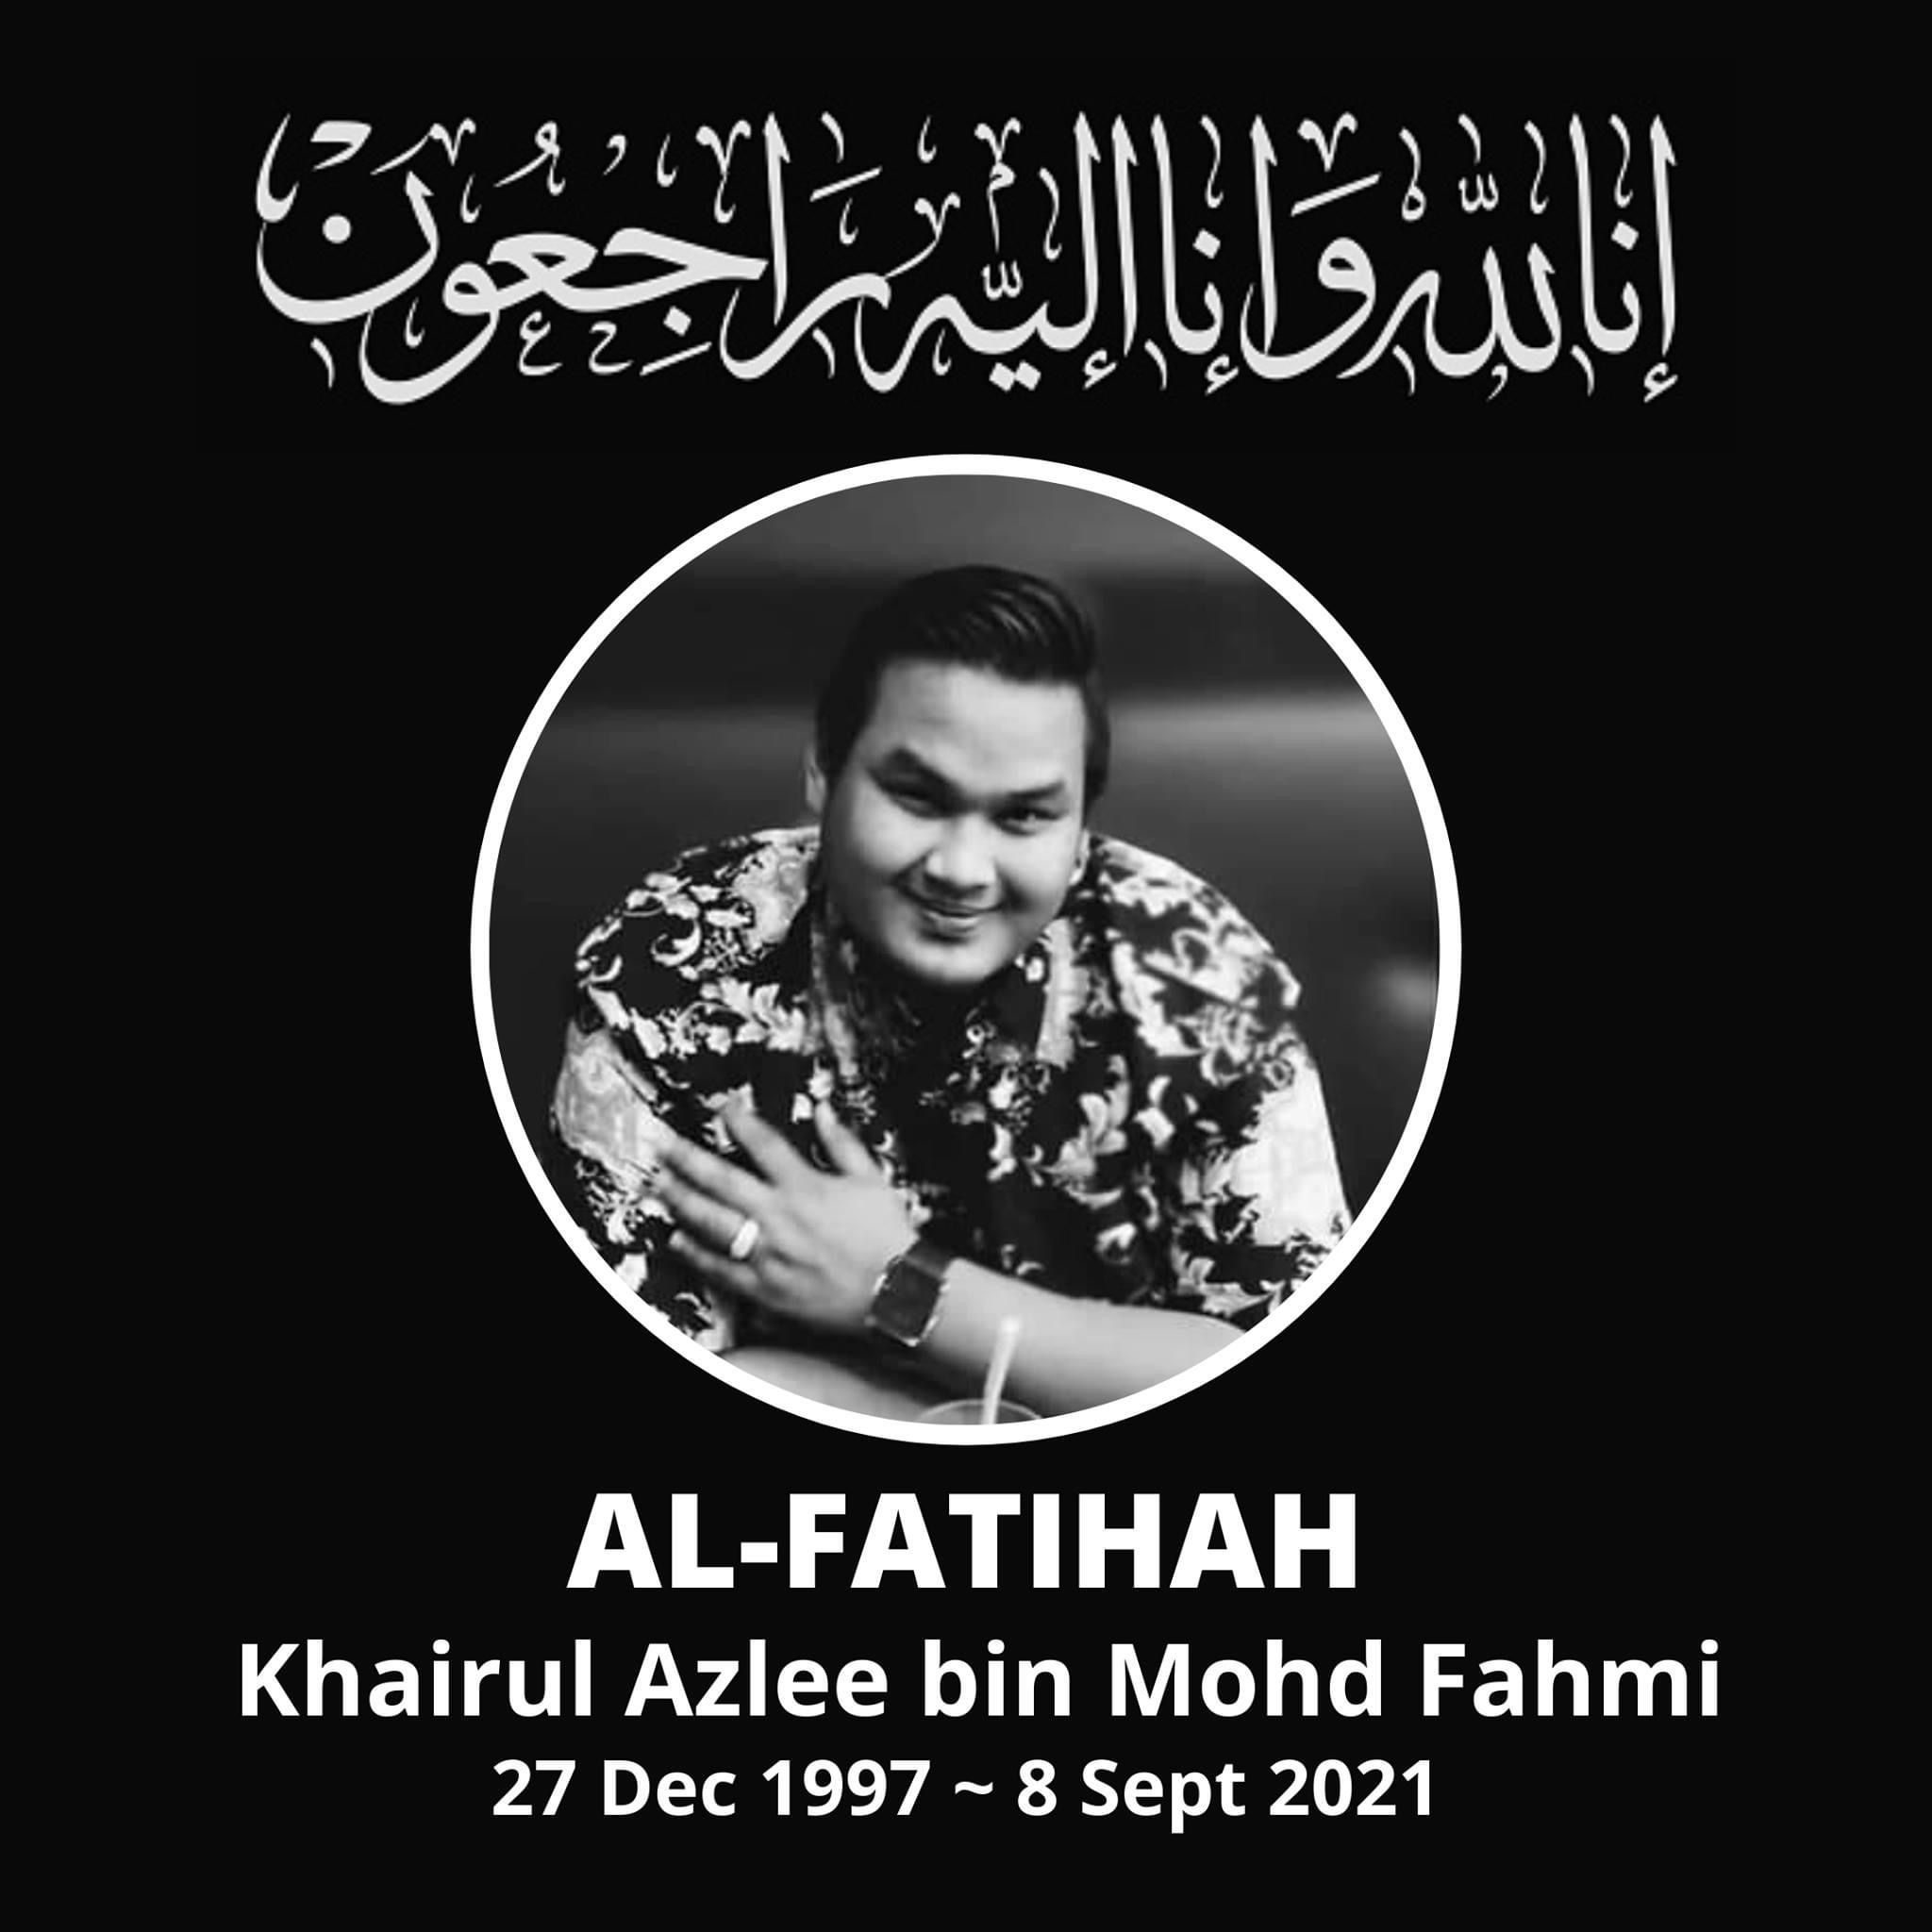 Orbituary message for Khairul Azlee bin Mohd Fahmi, born 27 Dec 1997 and died 8 Sept 2021. He is pictured smiling with his hand on his chest.